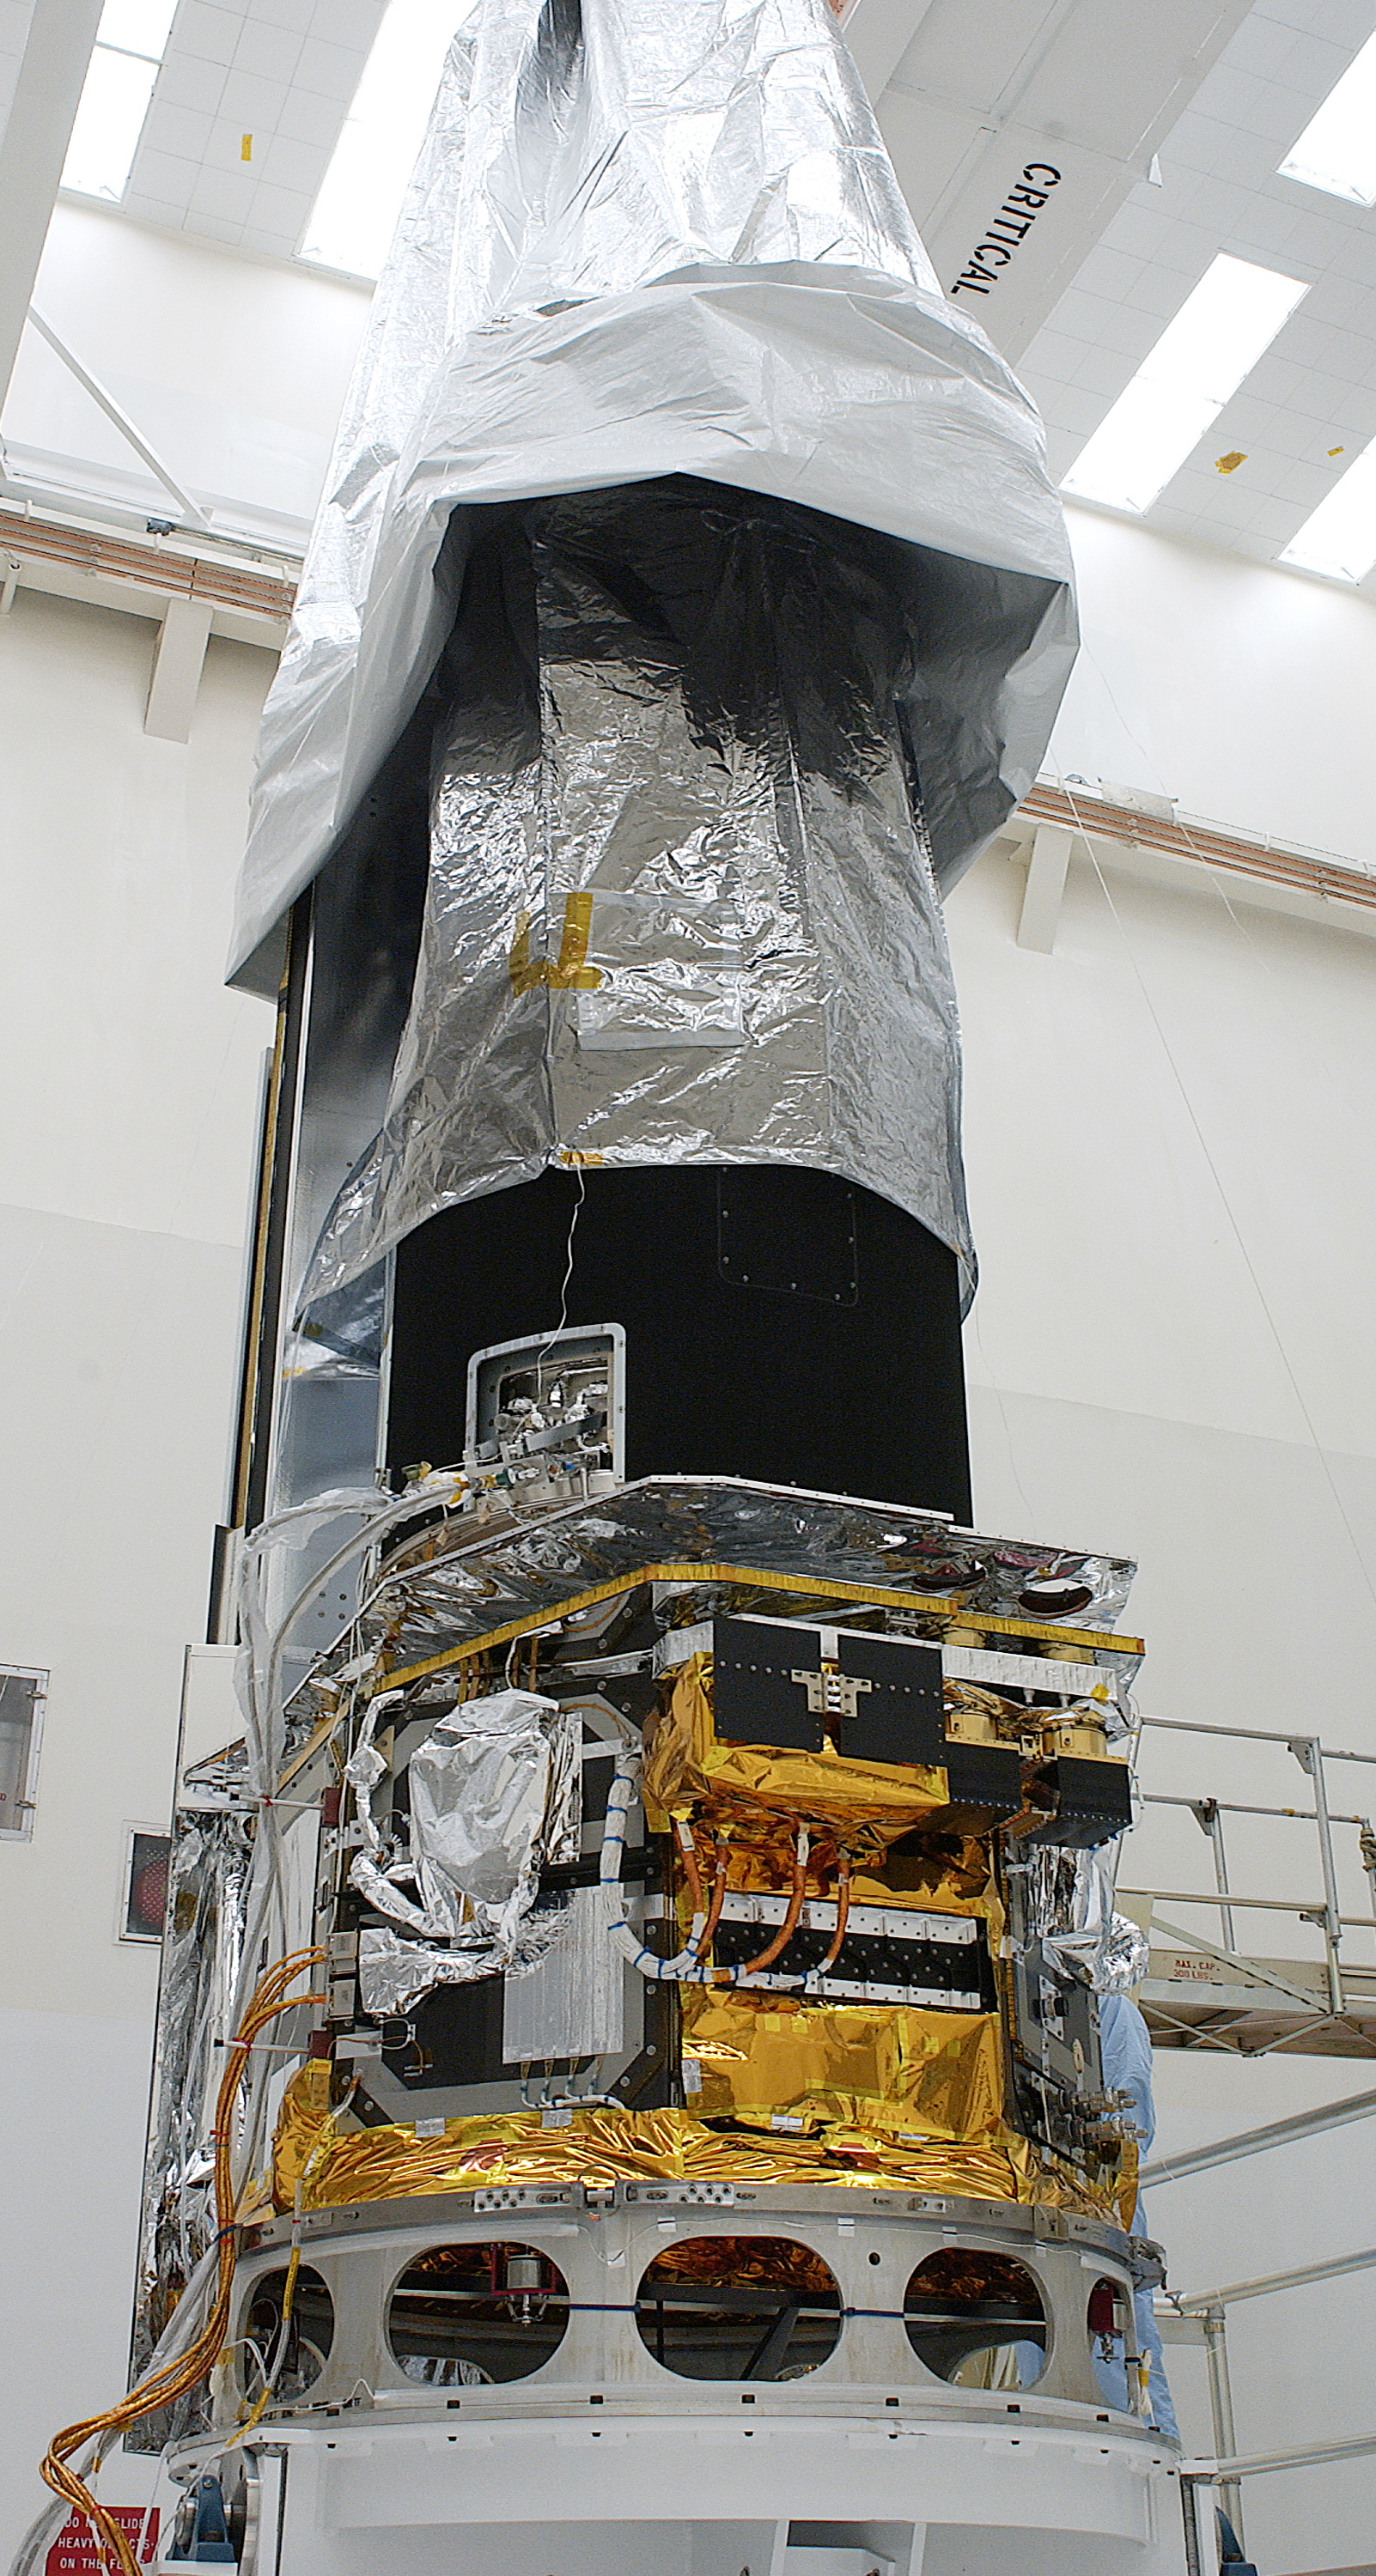 Spitzer and its dust cover